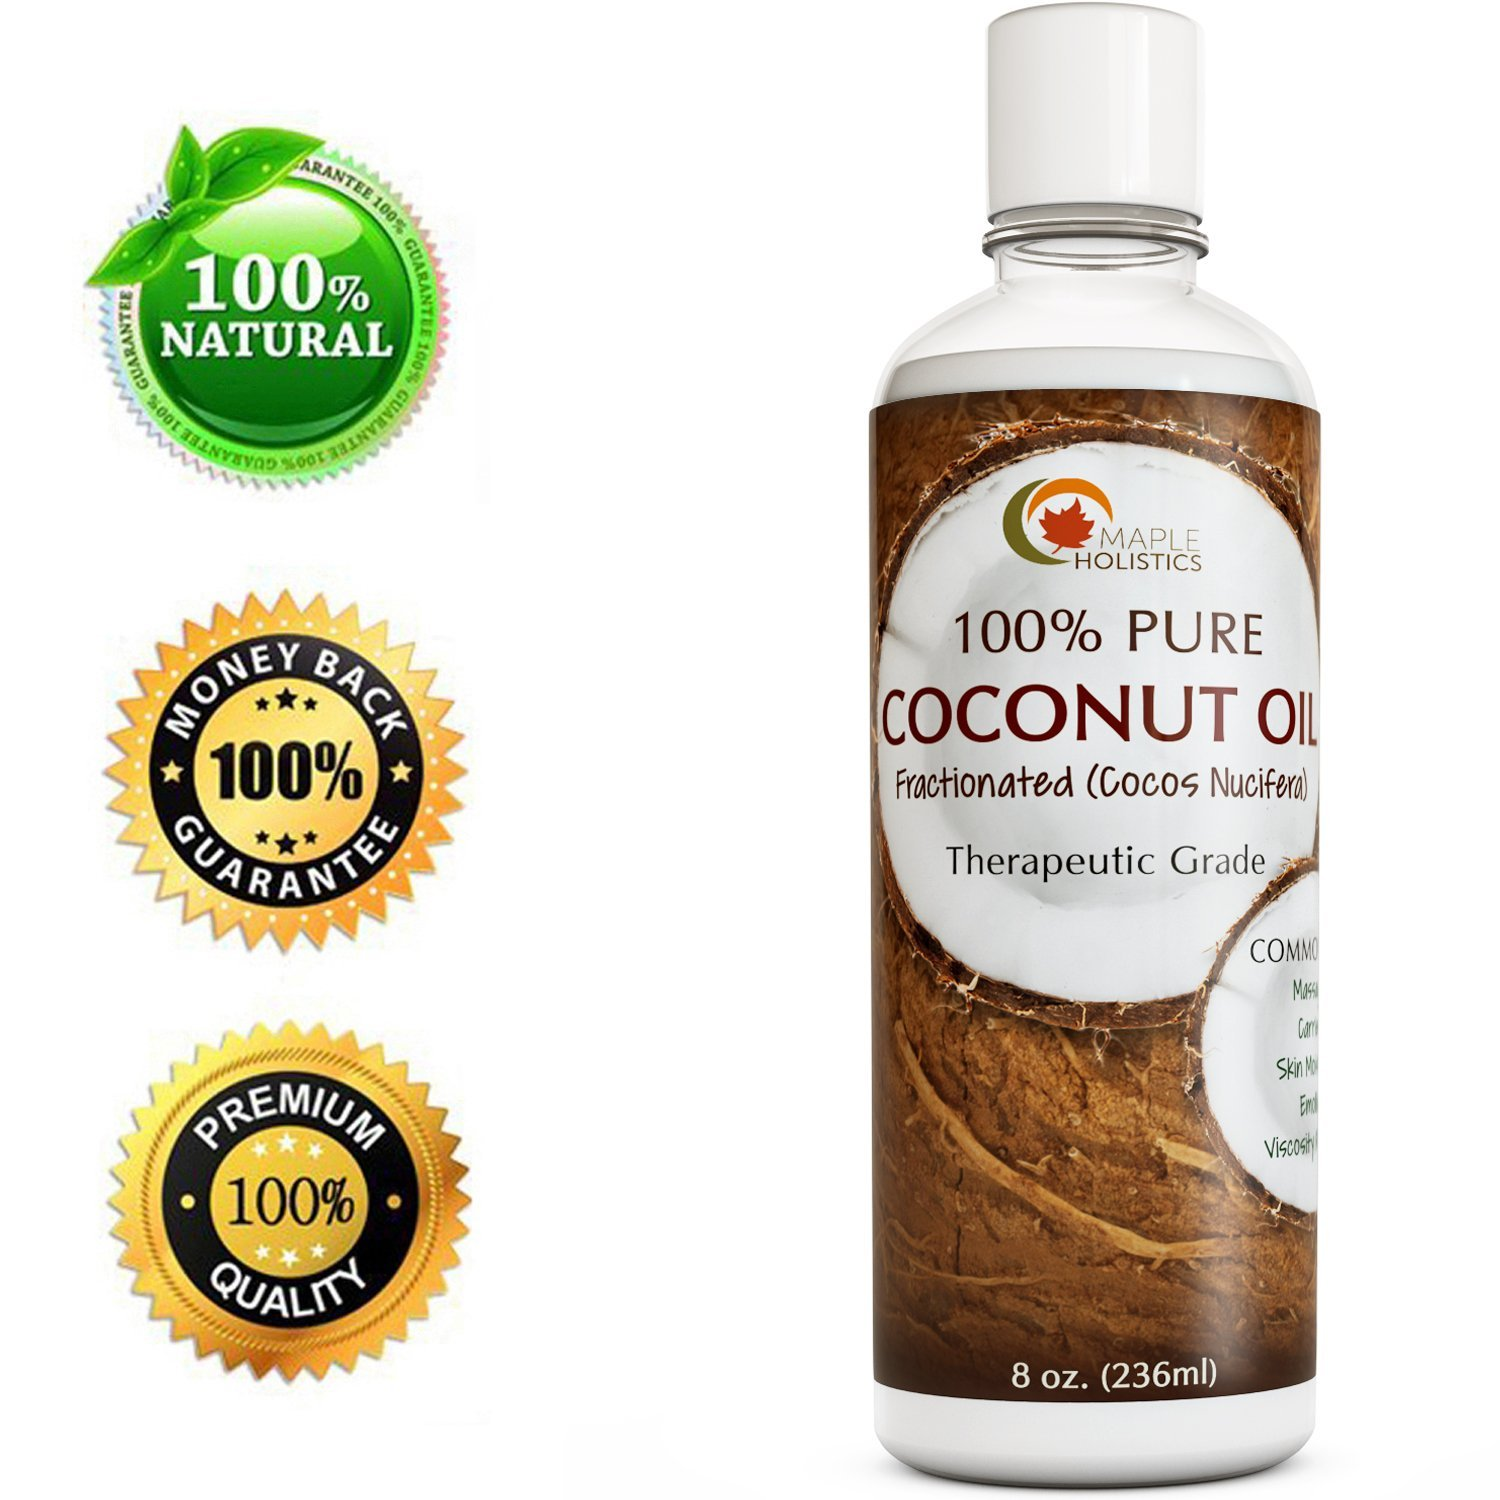 Maple Holistics 100% Pure Coconut Oil, Anti-Aging + Pregnancy, Natural Skin & Hair Care Product, 8oz